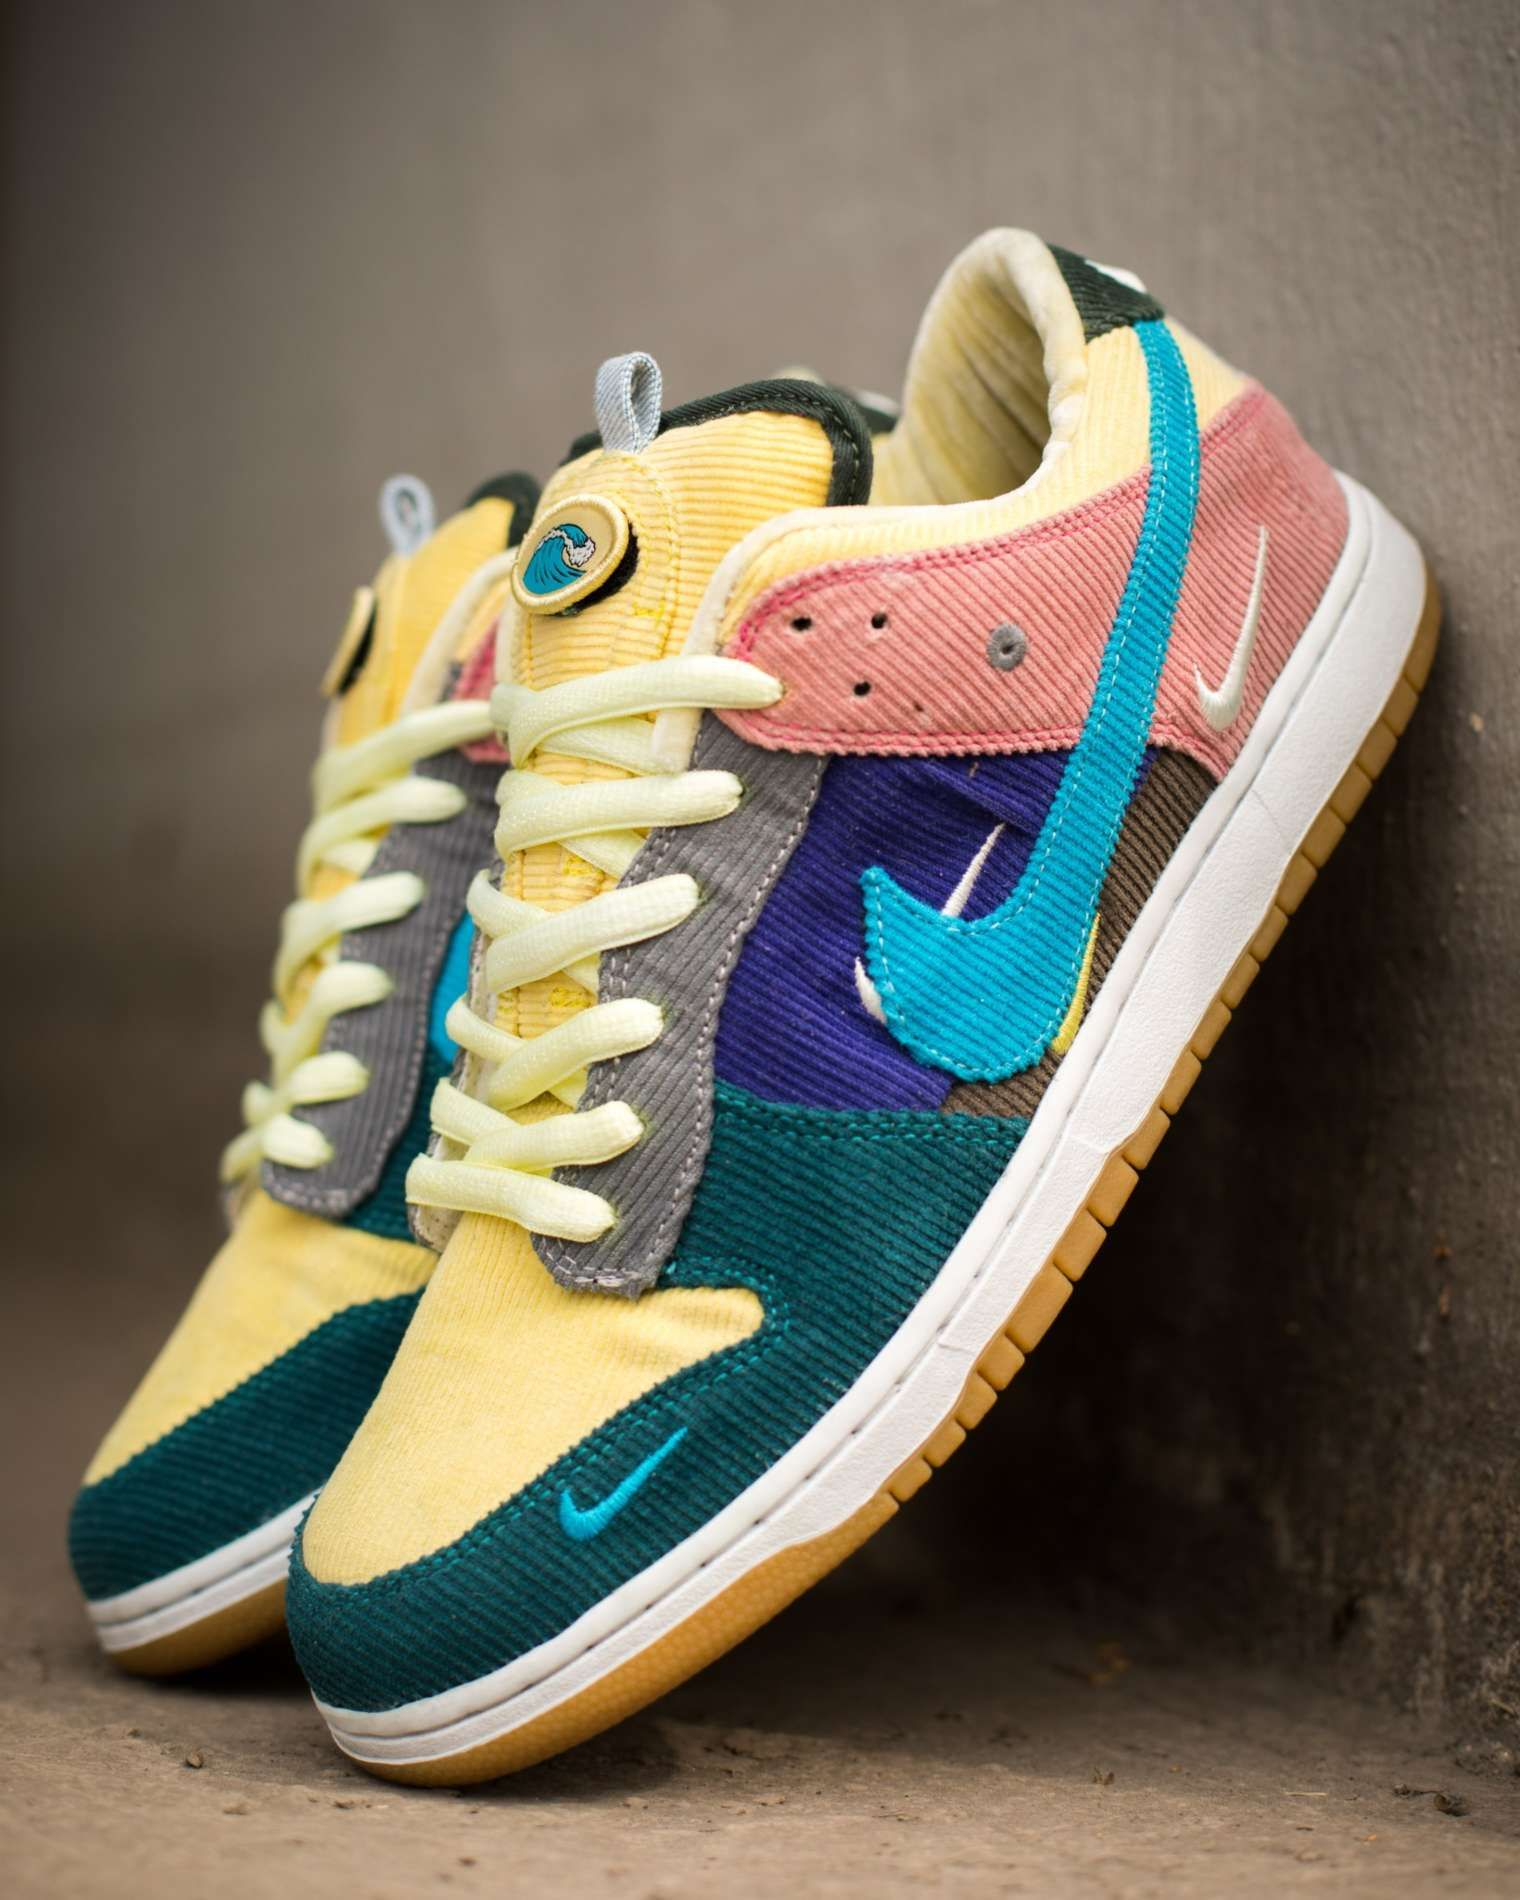 Nike Sb Dunk Air Max 97 1 X Sean Wotherspoon Custom Eukicks Sneakers Hype Shoes Sneakers Fashion